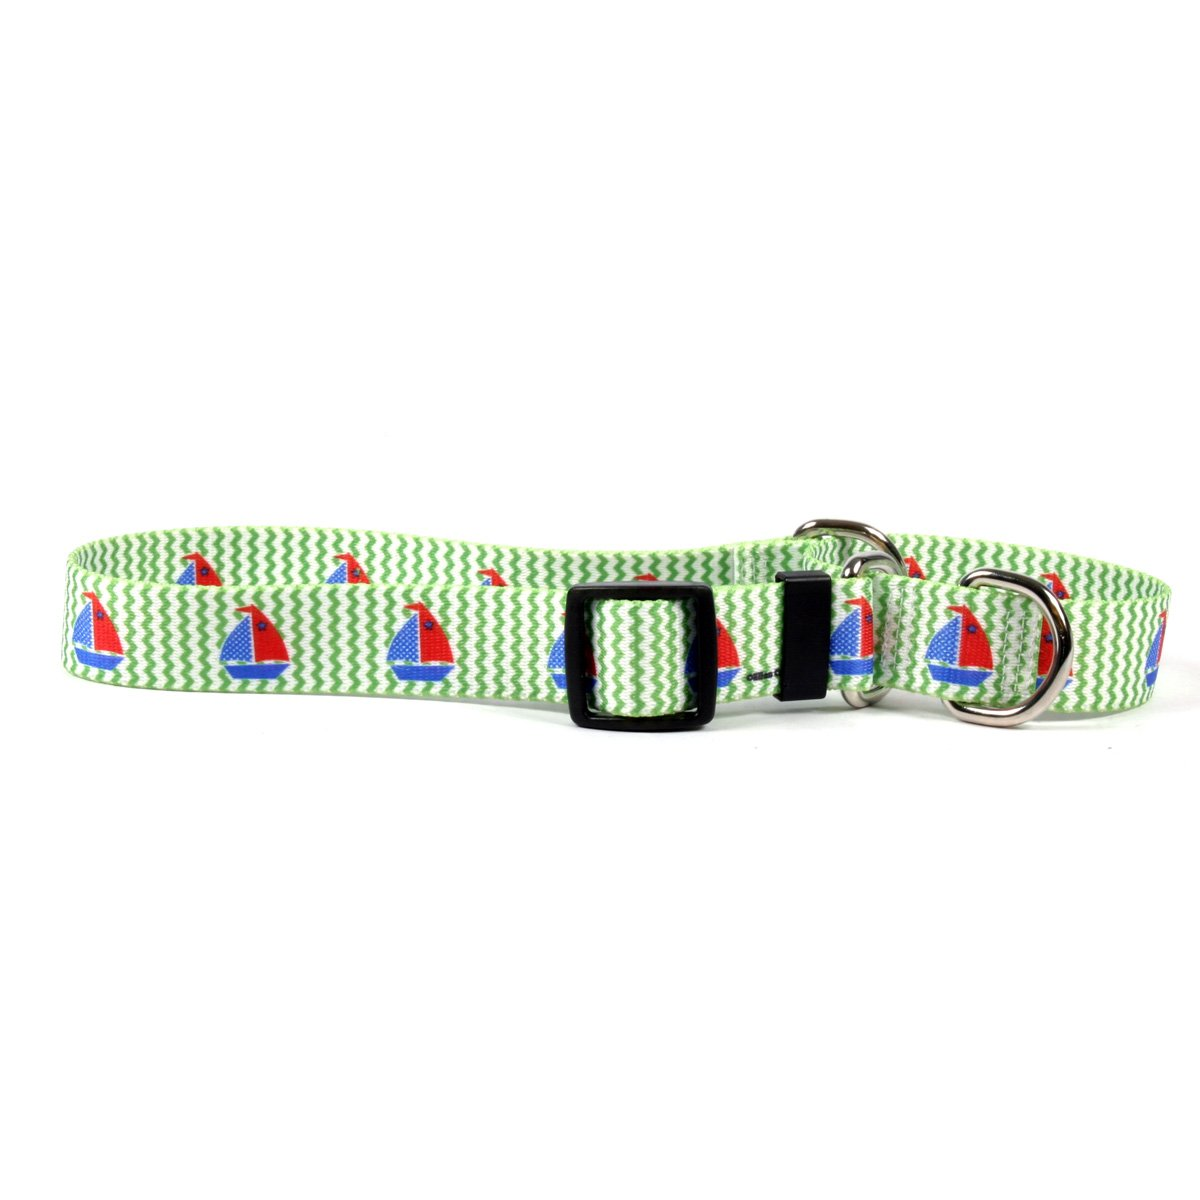 Yellow Dog Design Toy Boats Martingale Dog Collar-Size Large-1 Inch Wide and fits Neck sizes 18 to 26 inches